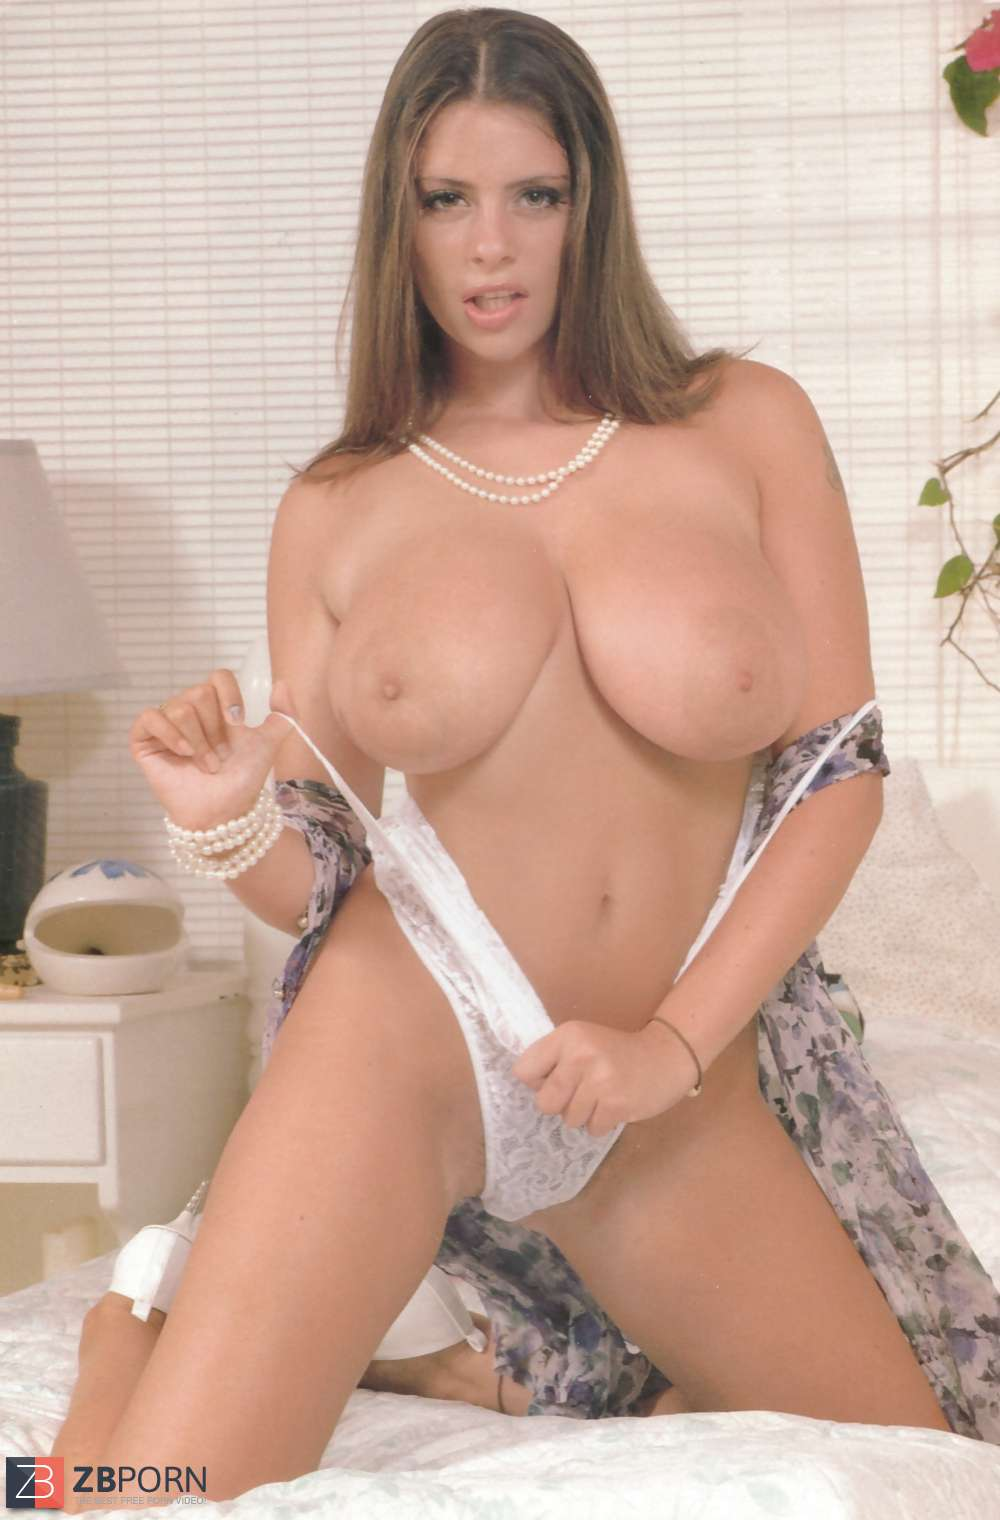 Linsey Dawn Mckenzie - The Early Years  Zb Porn-6015